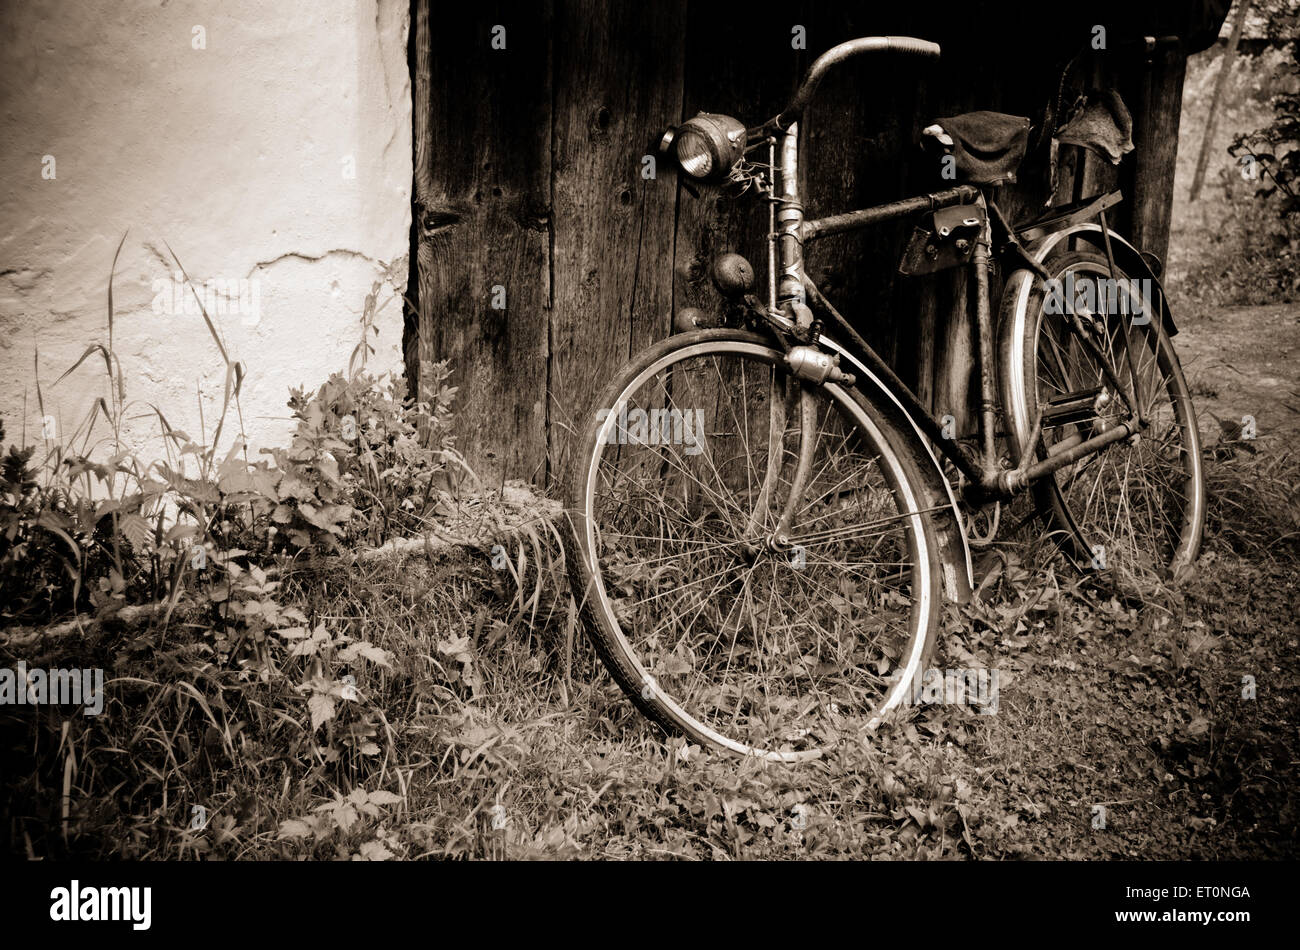 Old bicycle near the house in the village - Stock Image